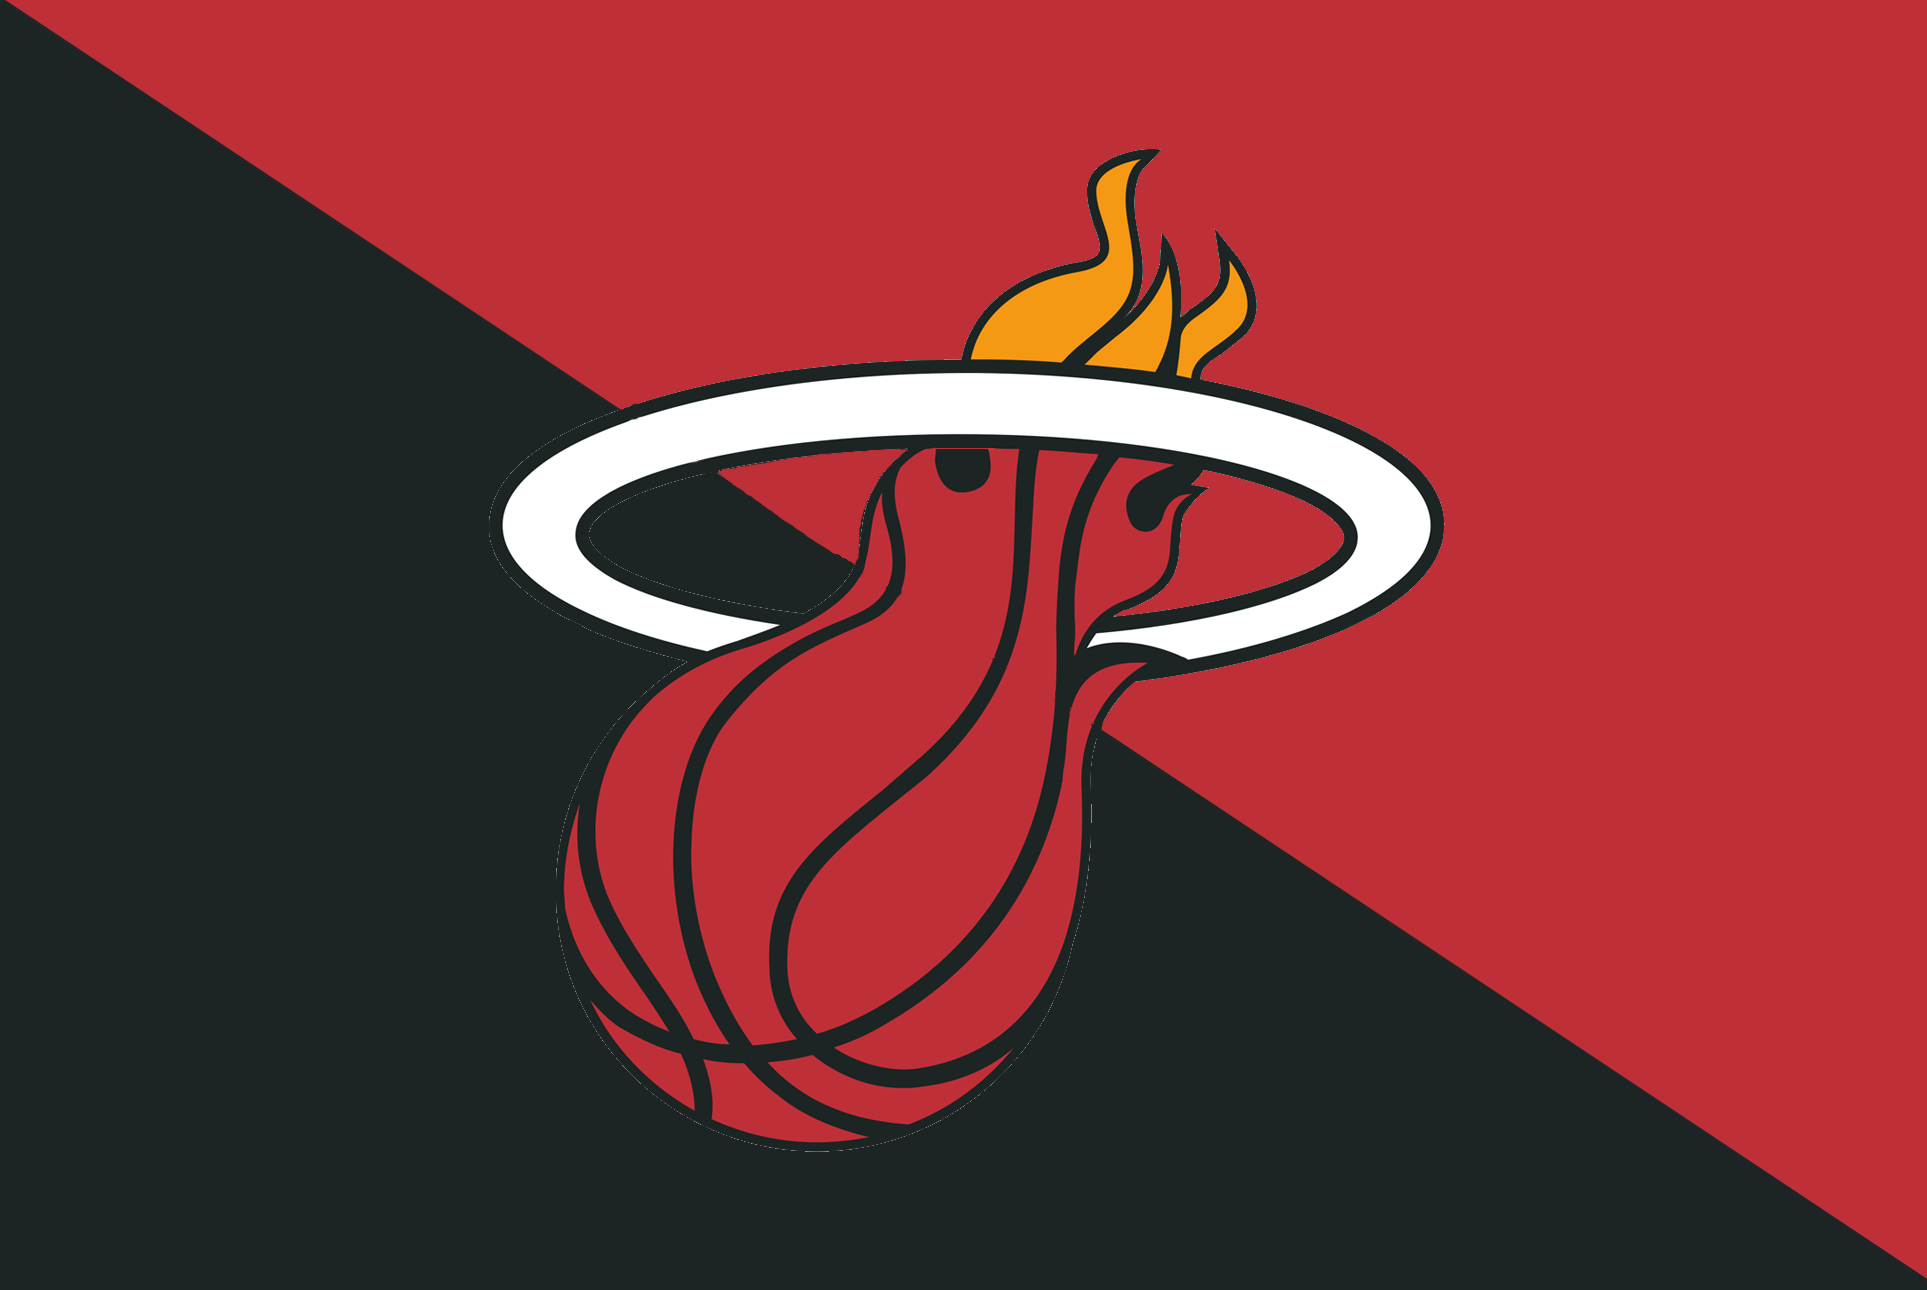 Miami Heat Wallpapers - Top Free Miami Heat Backgrounds ...